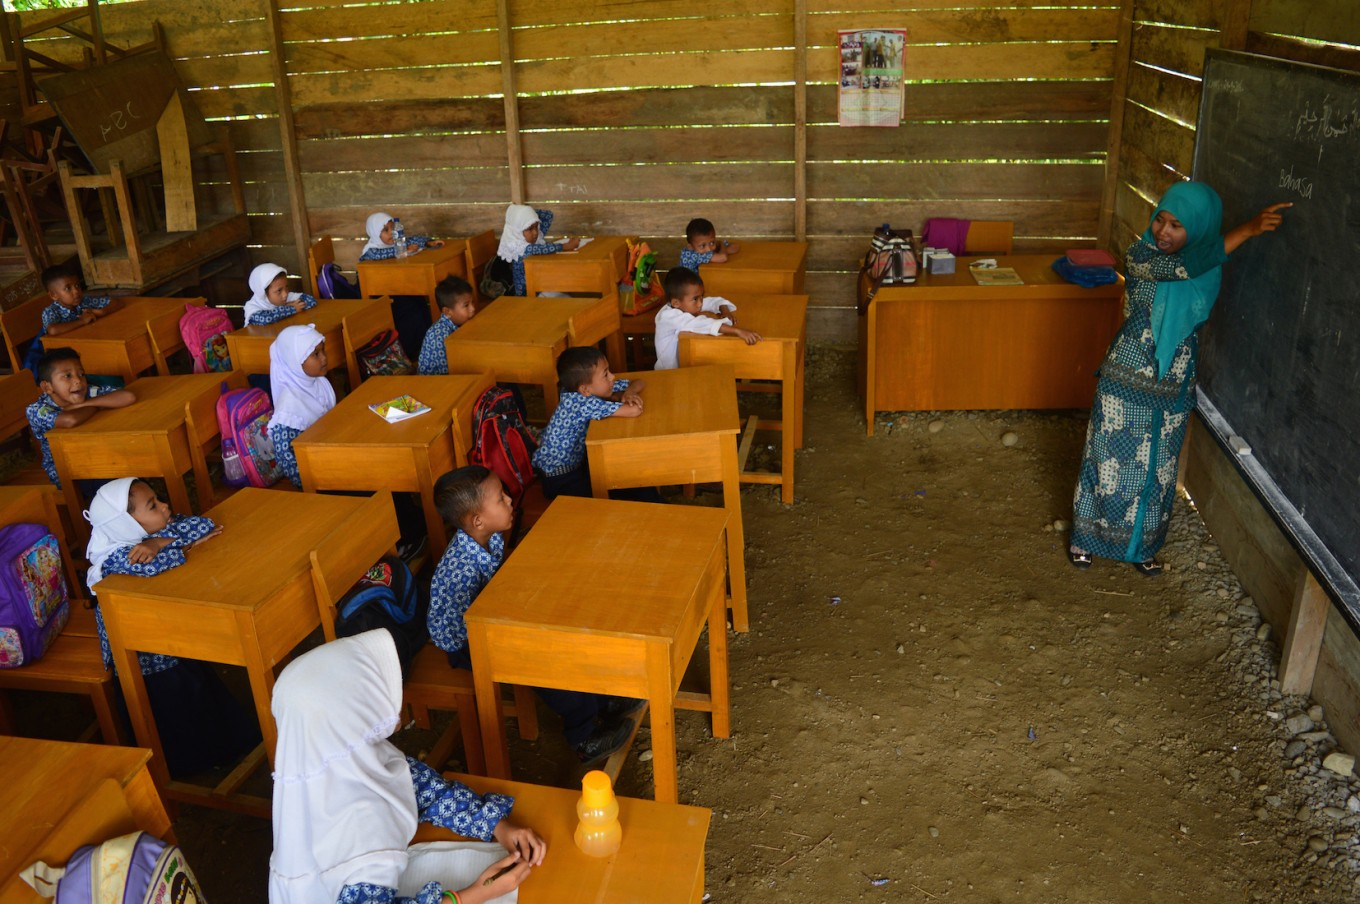 Young teachers fill-in education gaps across the archipelago, one year at a time